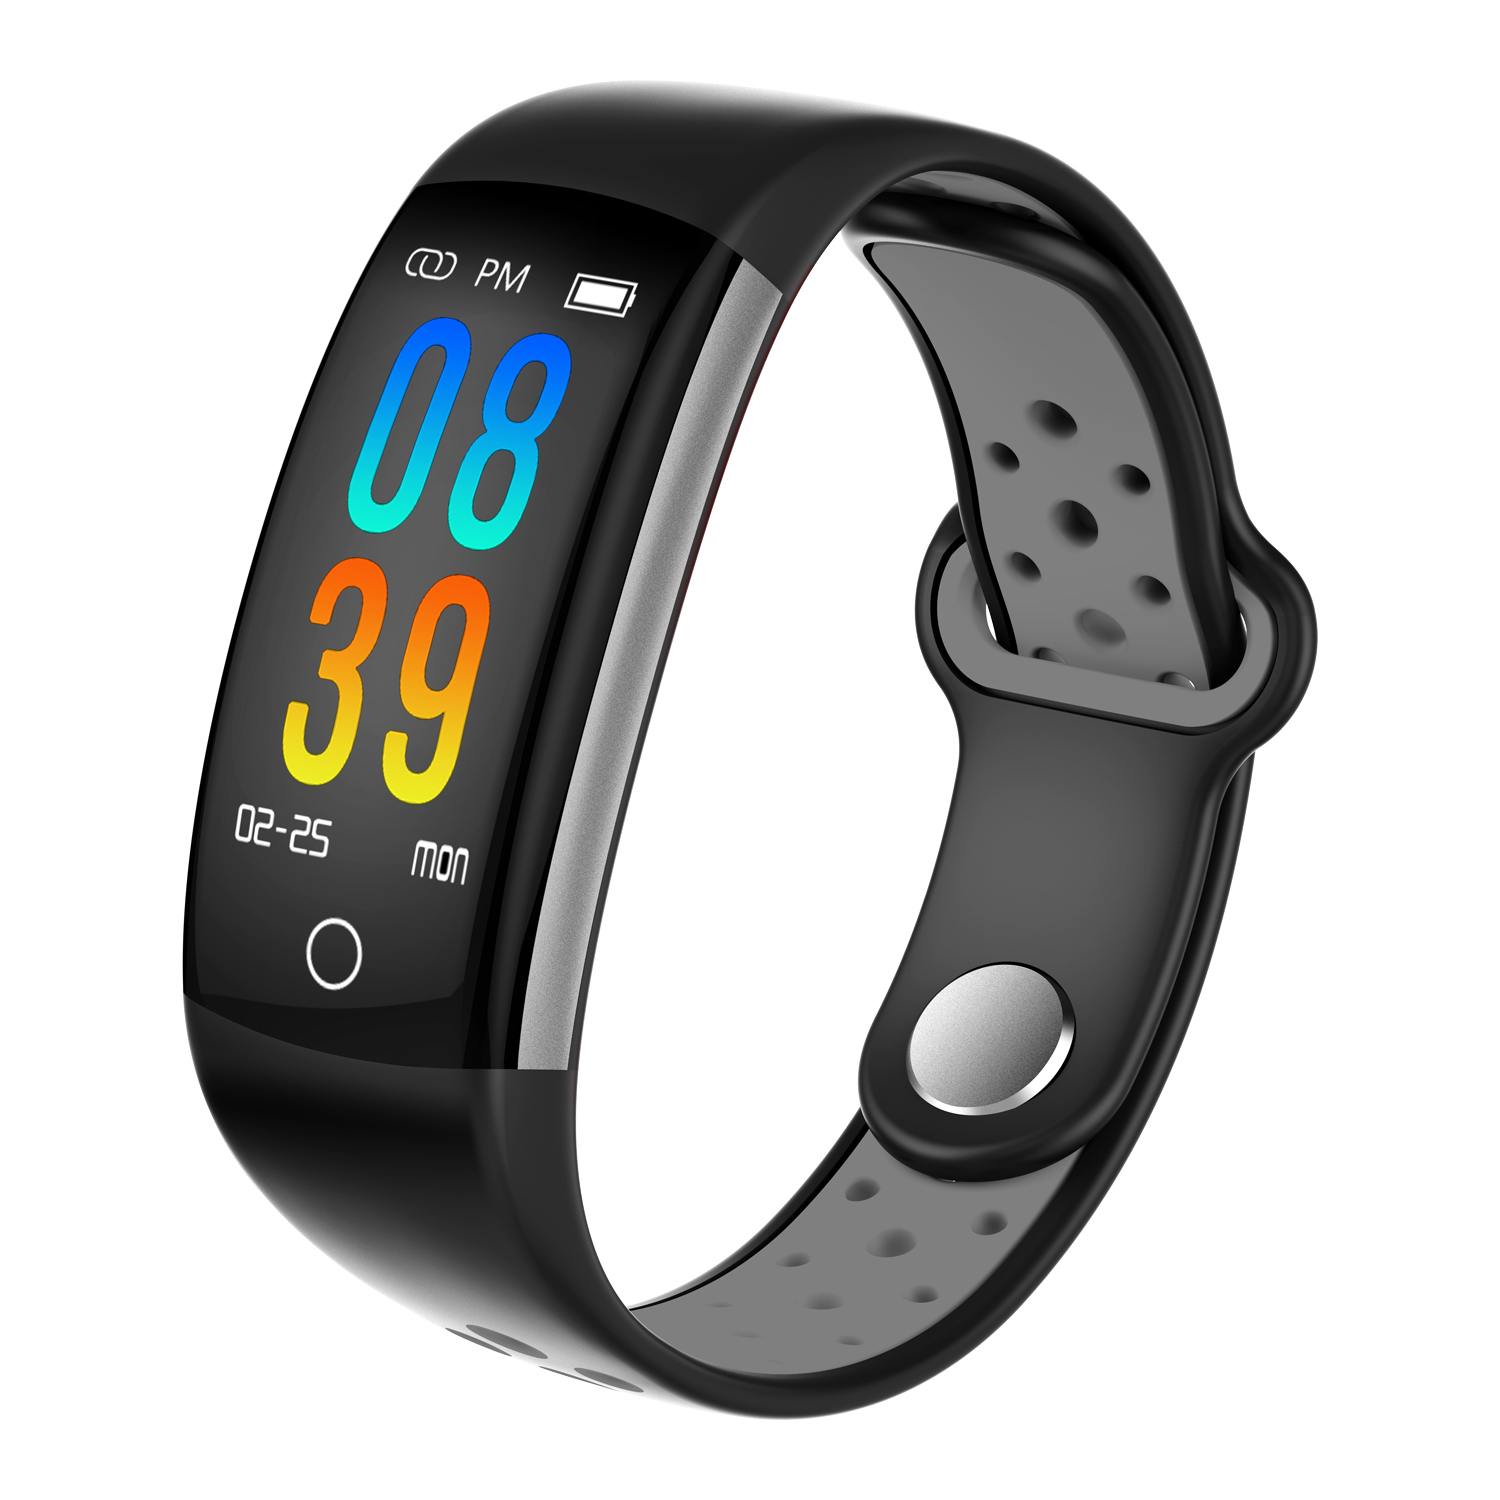 Wholesale Q6 Bluetooth Fitness Tracker - Heartrate Monitor, Pedometer, Calorie Counter, Notificaions, Calls, , 0.96 Inch Display Ip68